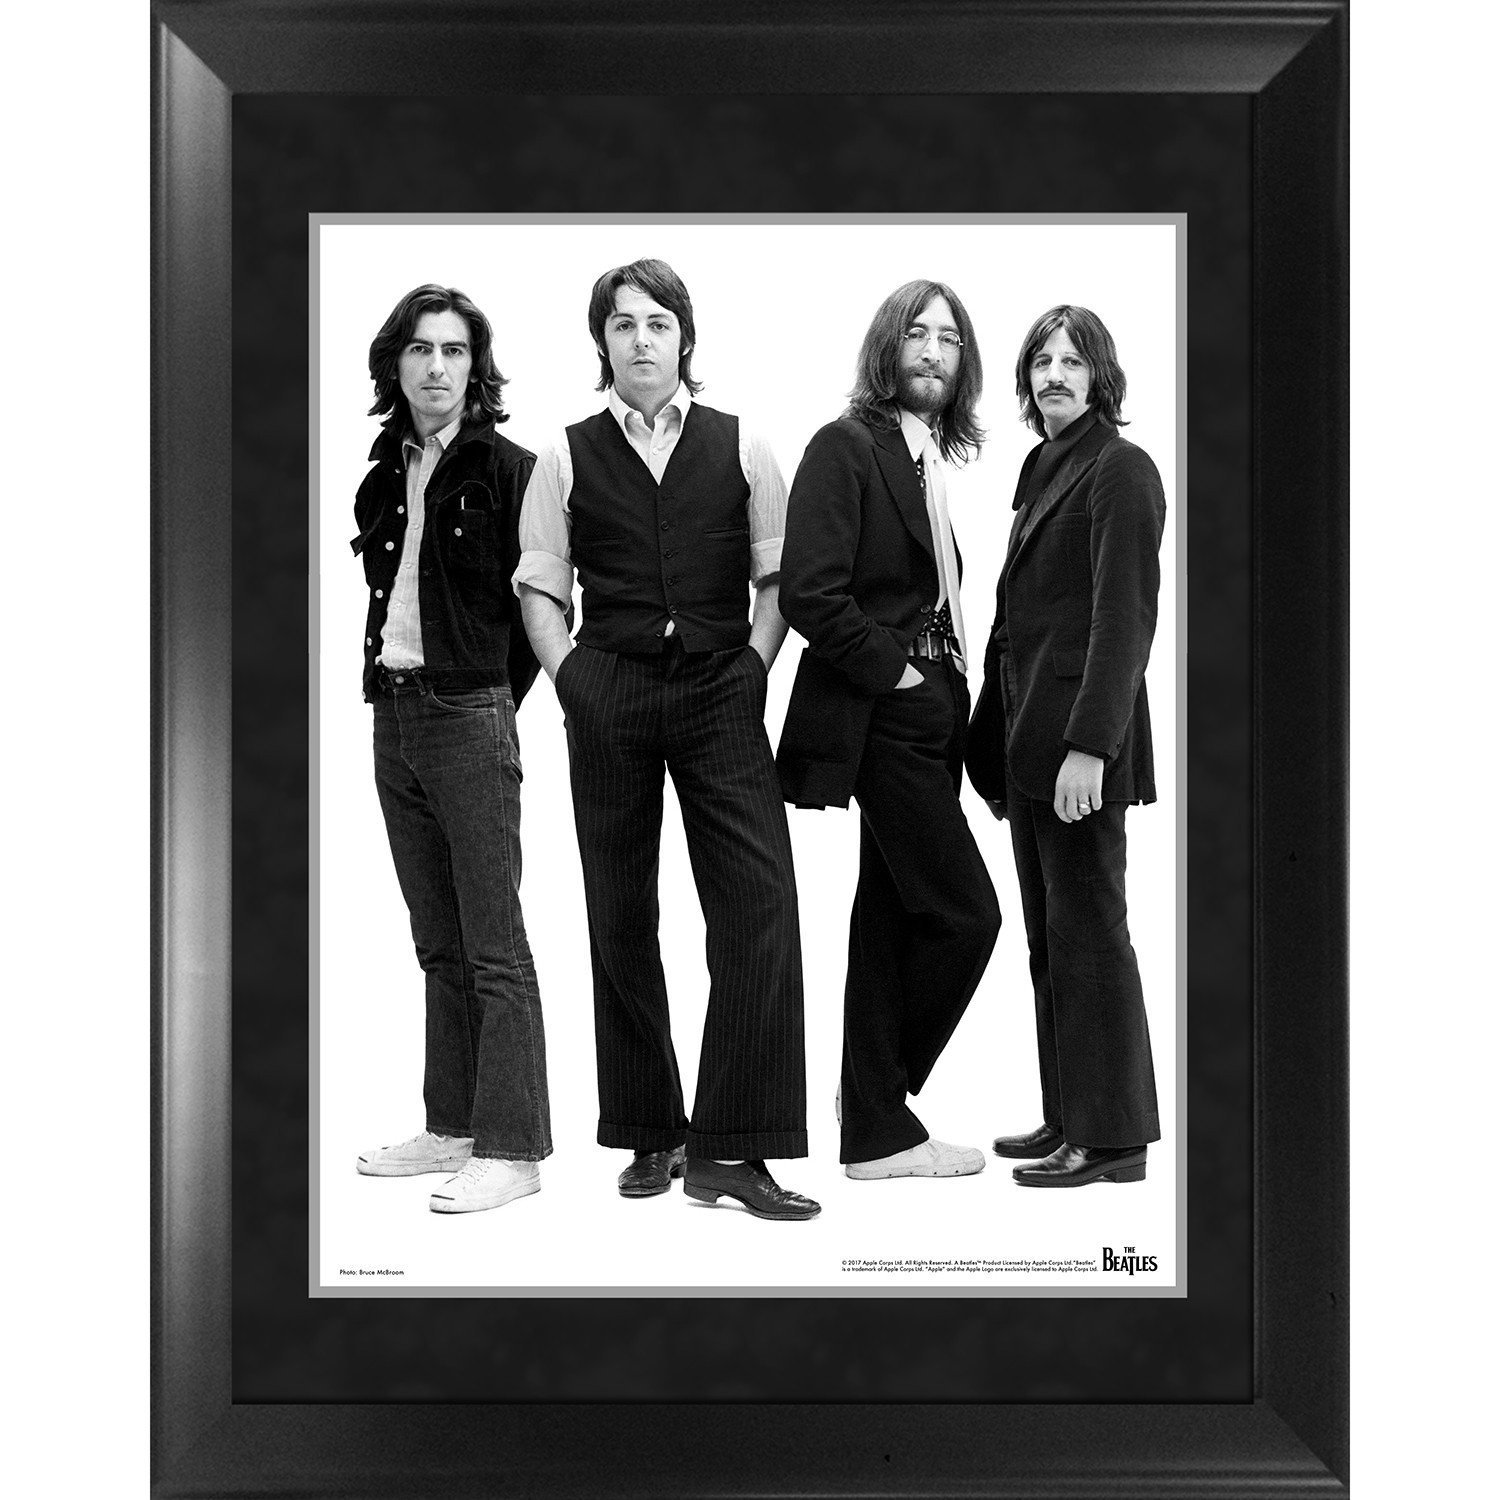 The Beatles Through the Years : 1969á Group Pose White Background Framed 16x20 Photo